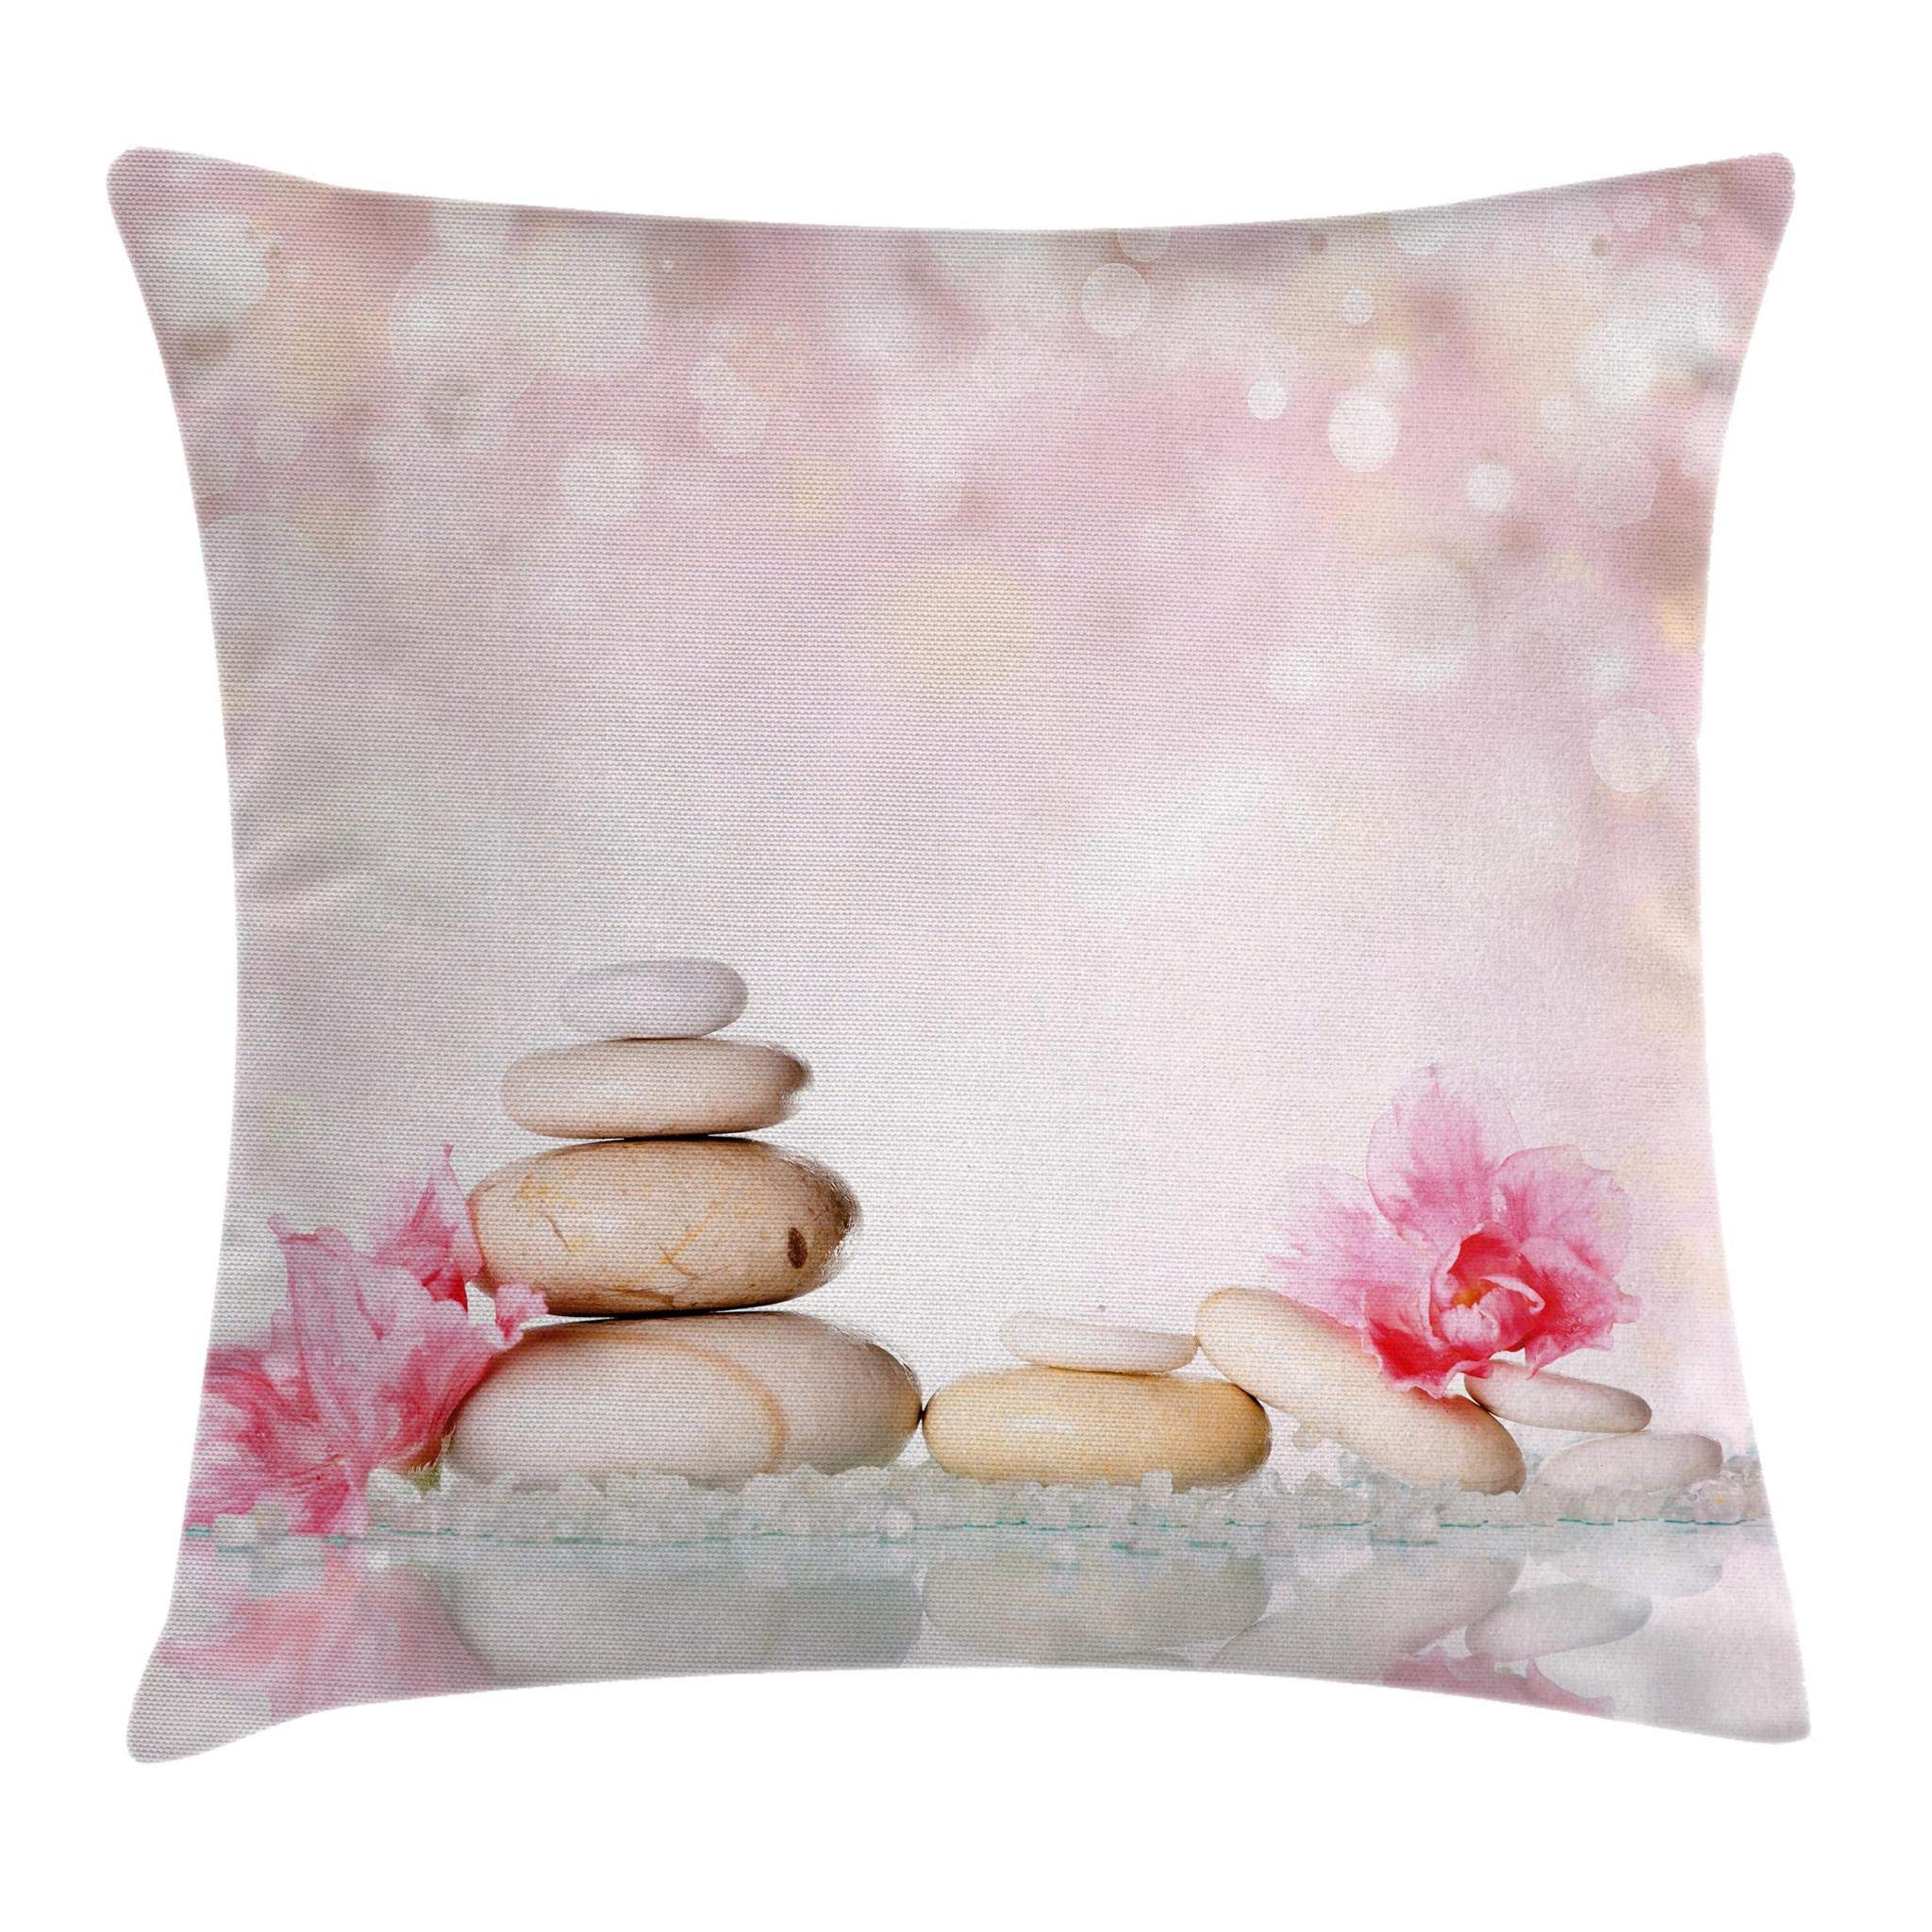 Ambesonne Spa Throw Pillow Cushion Cover, Bohemian Zen Stones and Soft Petals Therapy Tradition Chakra Yoga Asian Picture, Decorative Square Accent Pillow Case, 16 X 16 Inches, Light Pink Peach